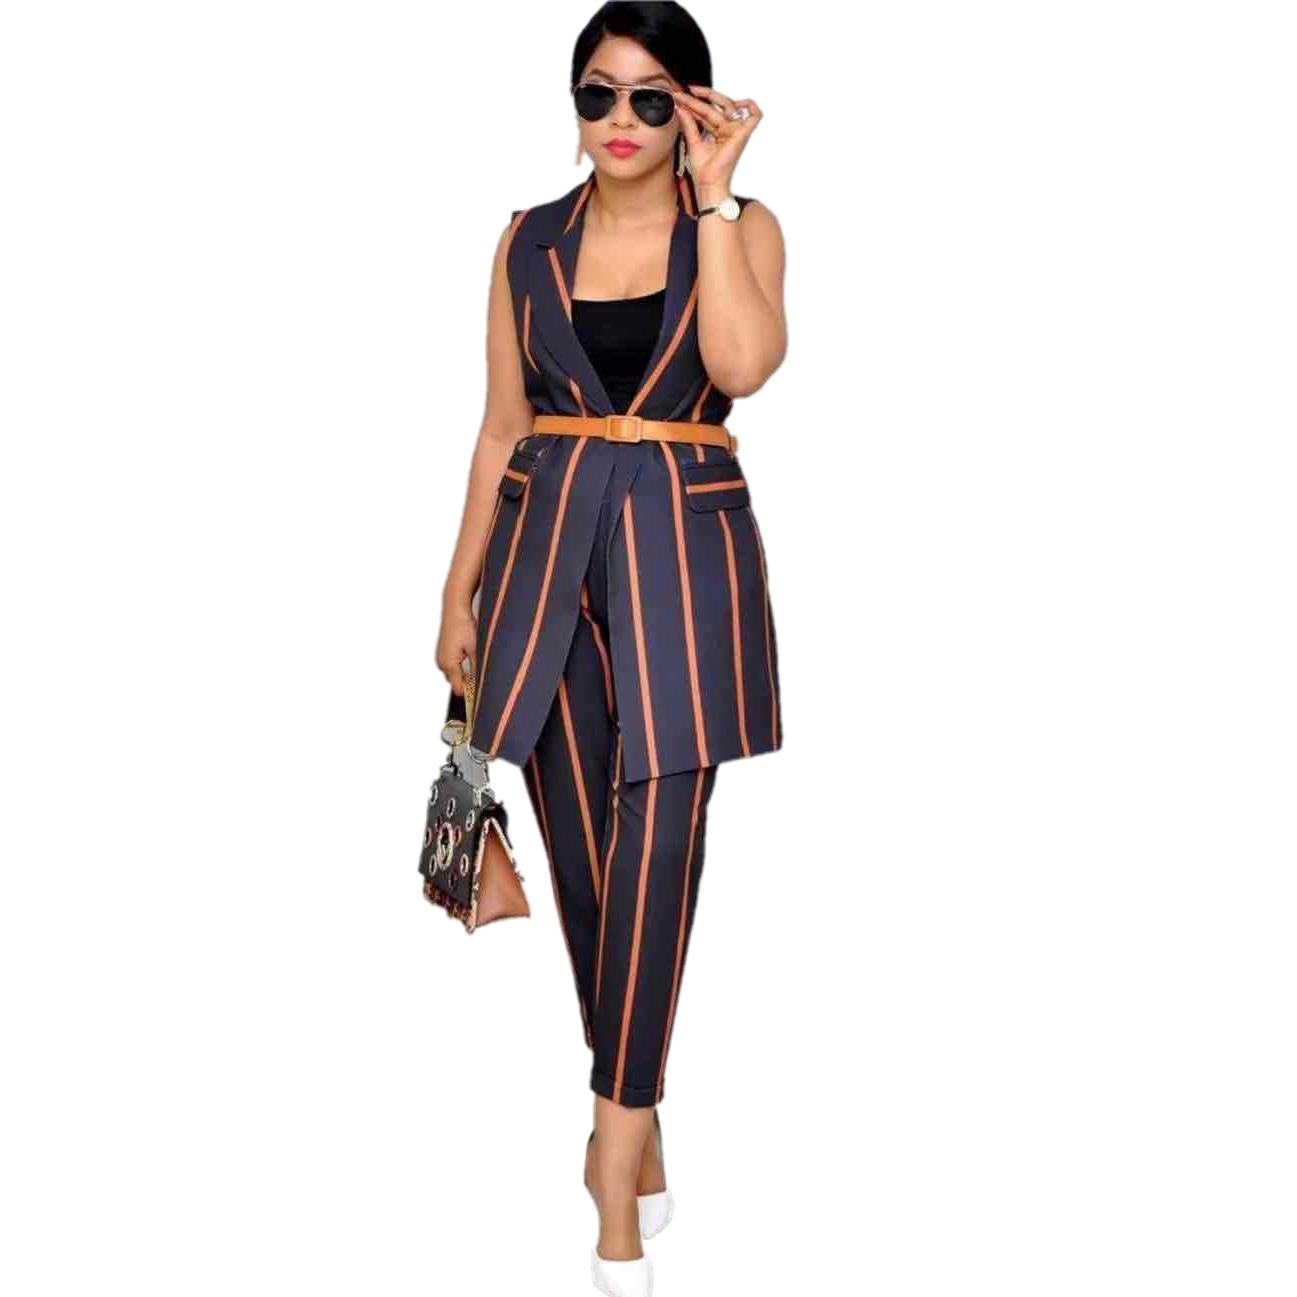 2 Piece Set Africa Clothes African Dashiki New Dashiki Fashion Suit (Top And Trousers) Super Elastic Party Plus Size For Lady